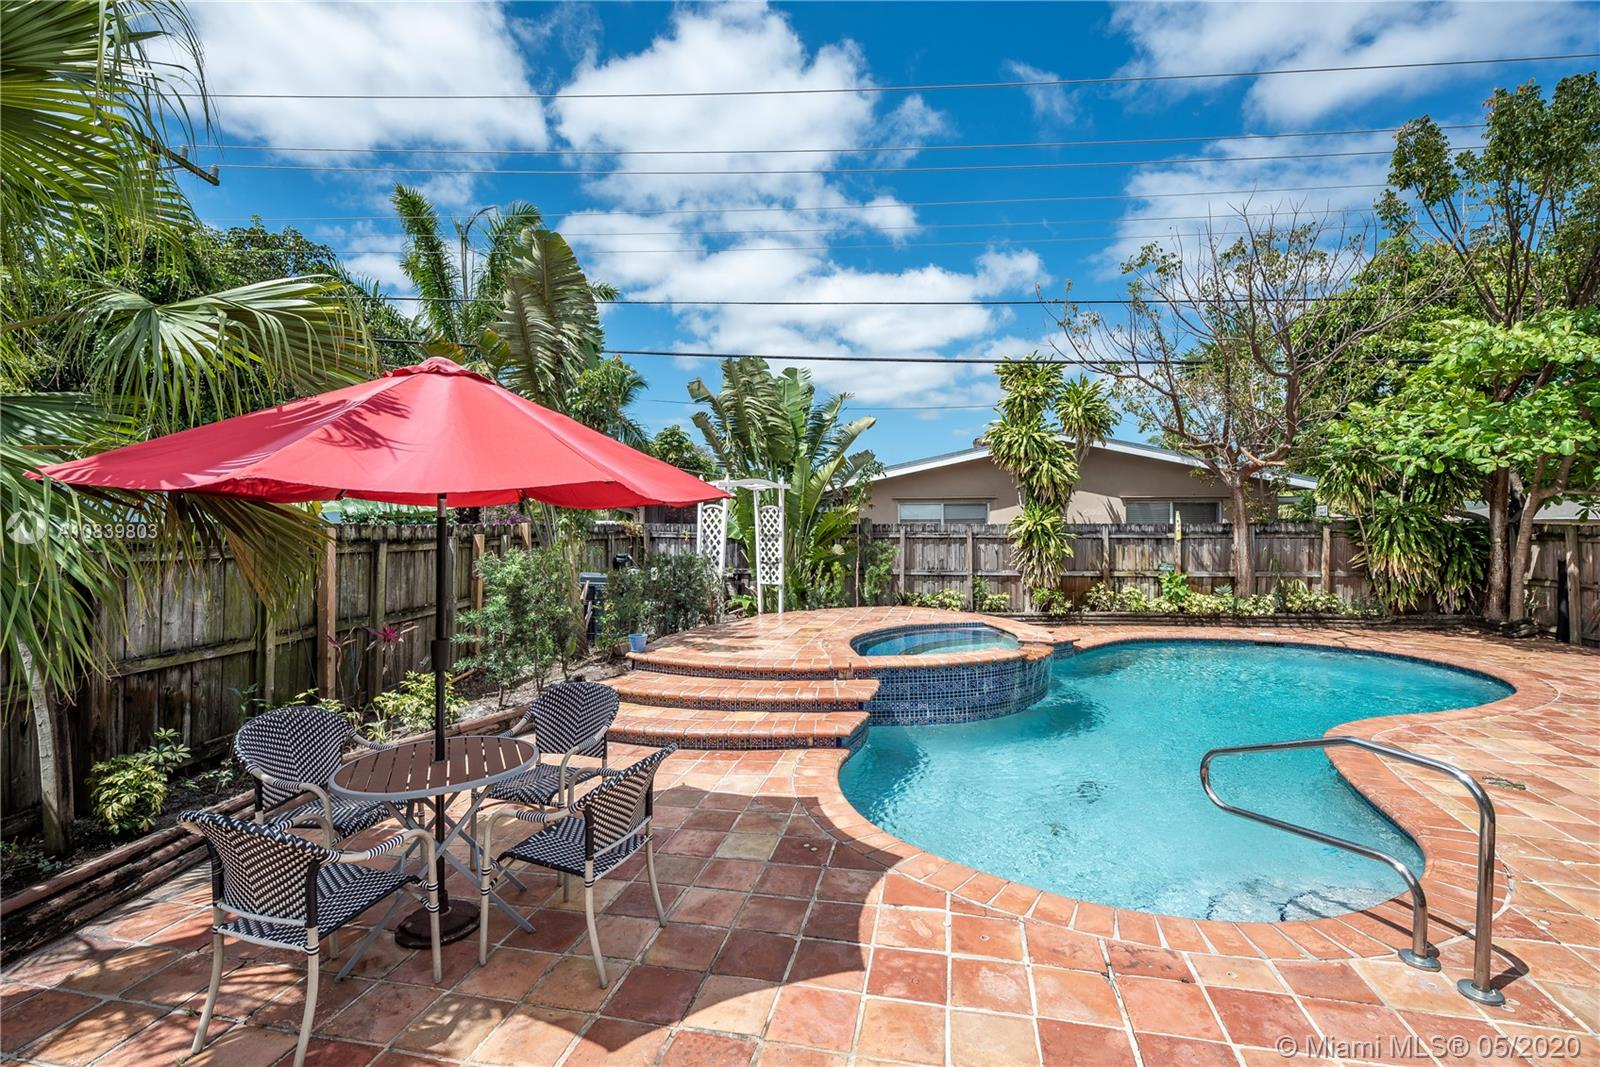 3D Tour Available! This rare North Andrews Garden pool and spa home is well-priced and ready for it's new owner.  Sitting on an oversized corner lot, living area is bigger than tax roll!.  All total square footage has been converted to living area.  Property has had some recent renovations and updates, including partial re-roof, and is move in ready!  Home boasts a large laundry room and there is also still a lot of flexibility in the current floor plan to make a nice master suite and/or in-law suite as 3rd bedroom has separate entrance.  Well sprinklers help keep the water bill down.  With a strong offer, seller will consider some credit at closing toward exterior painting and impact windows.  Check out the 3D Tour!  https://my.matterport.com/show/?m=VvPcb26sSZ3&mls=1